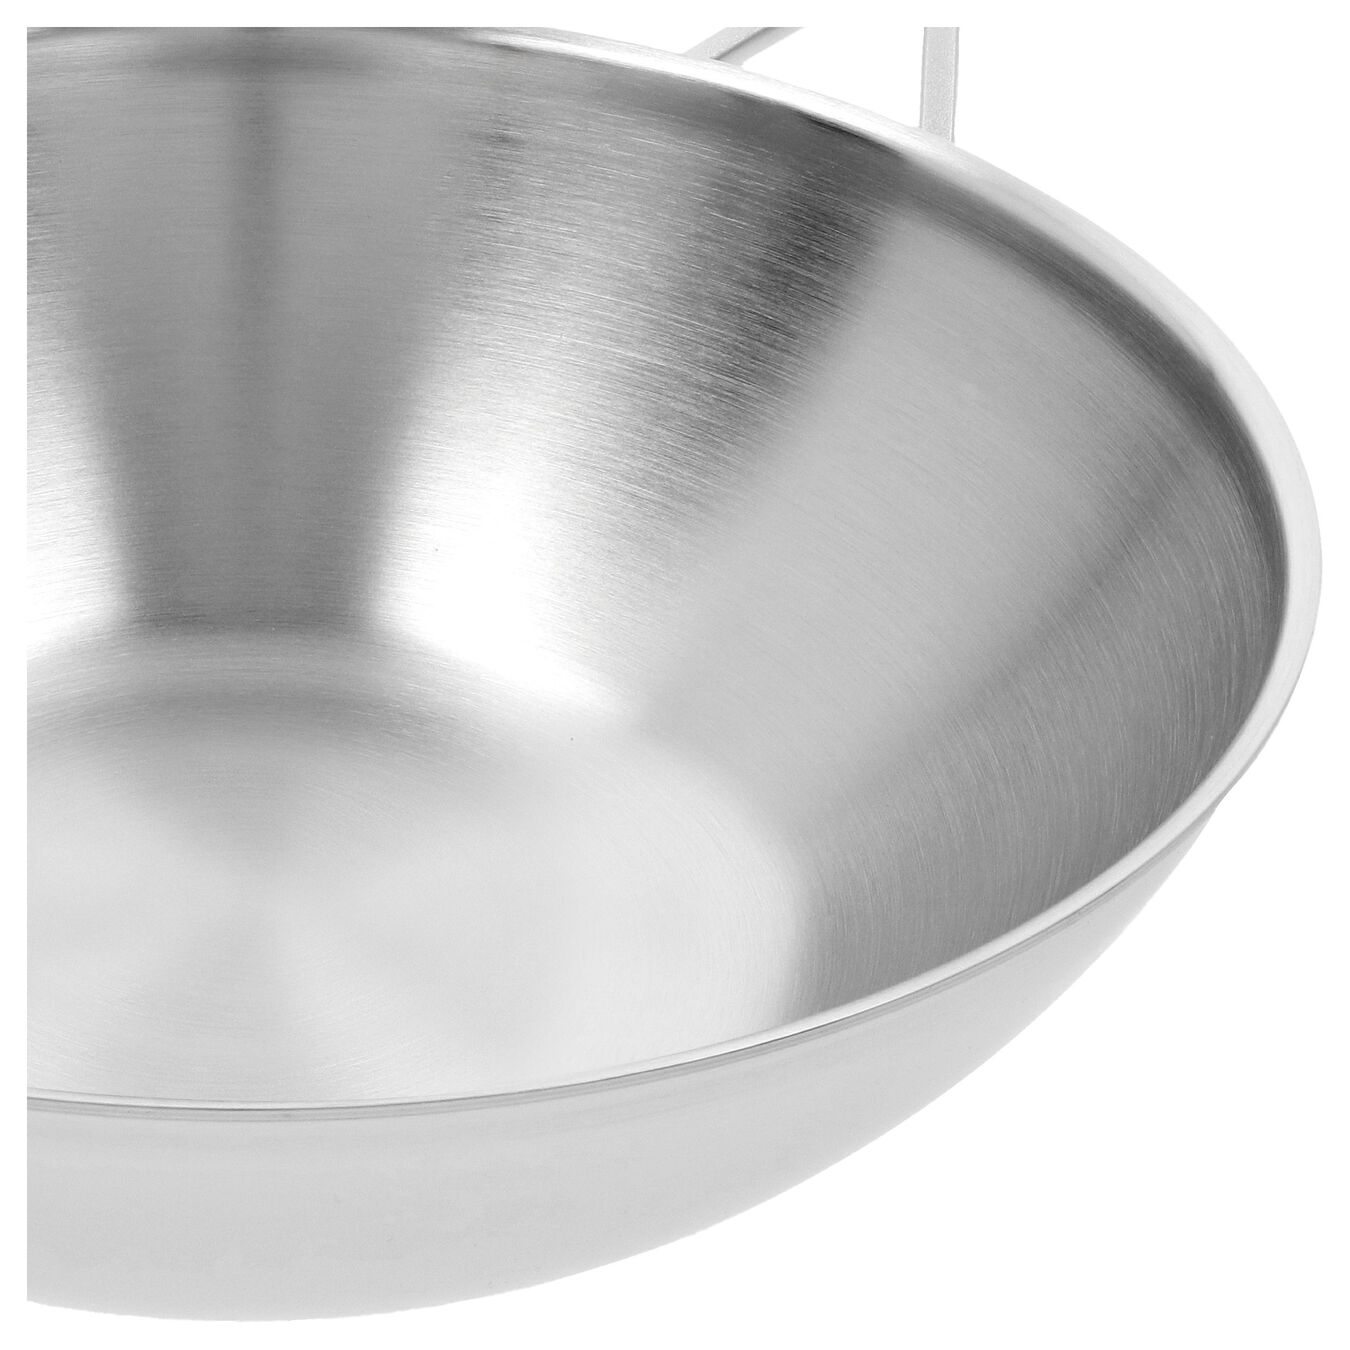 5 qt, 18/10 Stainless Steel, Flat Bottom Wok, silver,,large 3